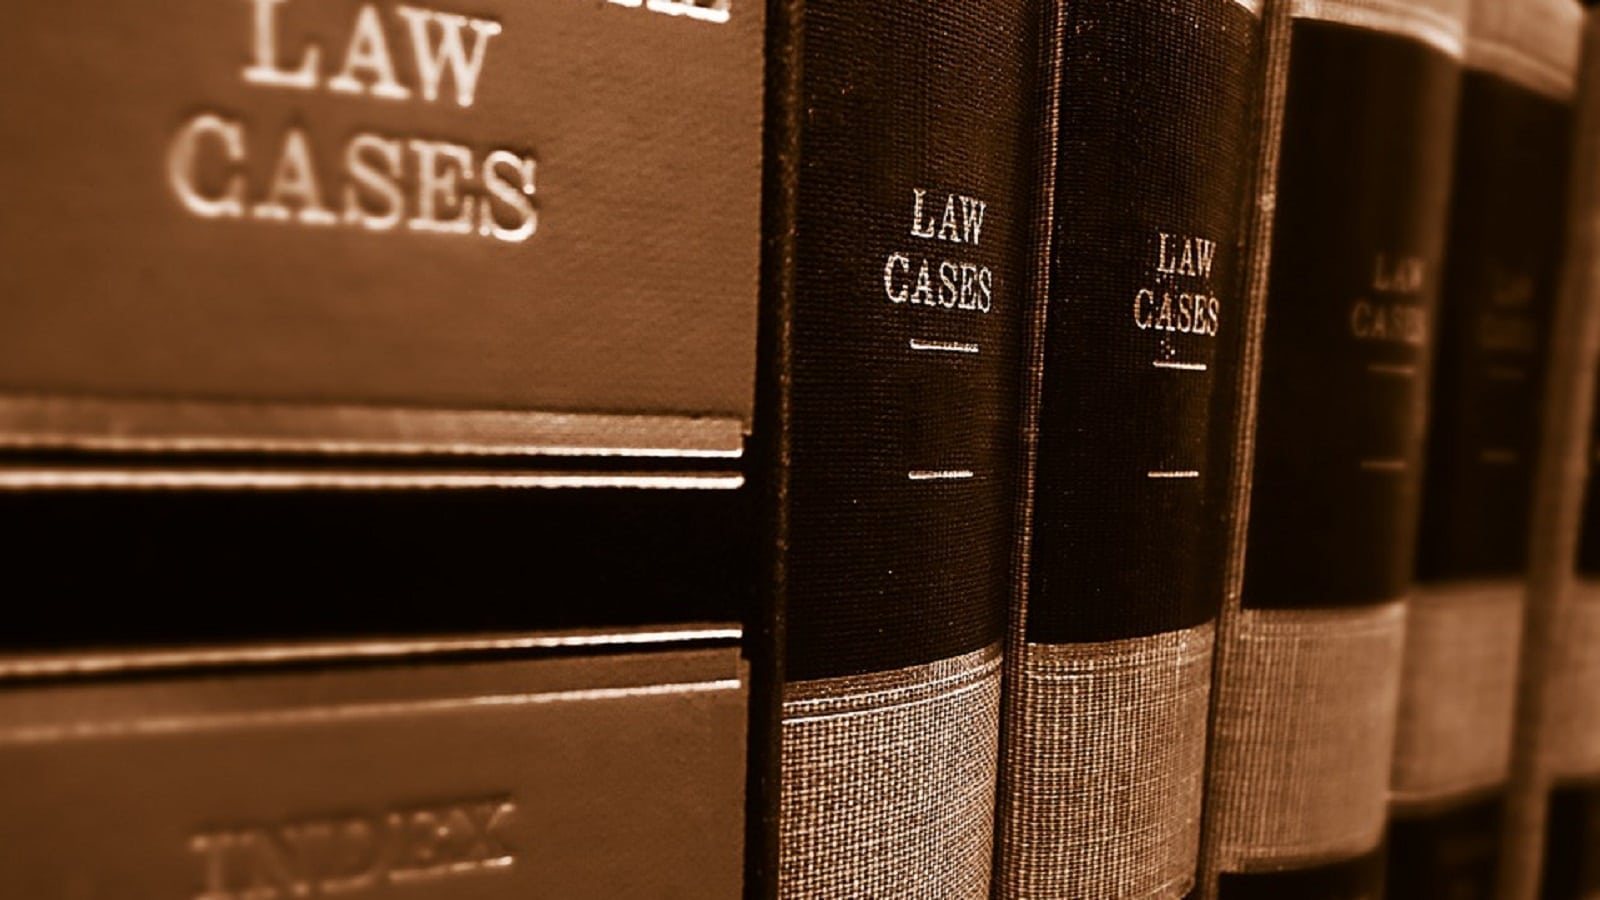 Law books stock photo